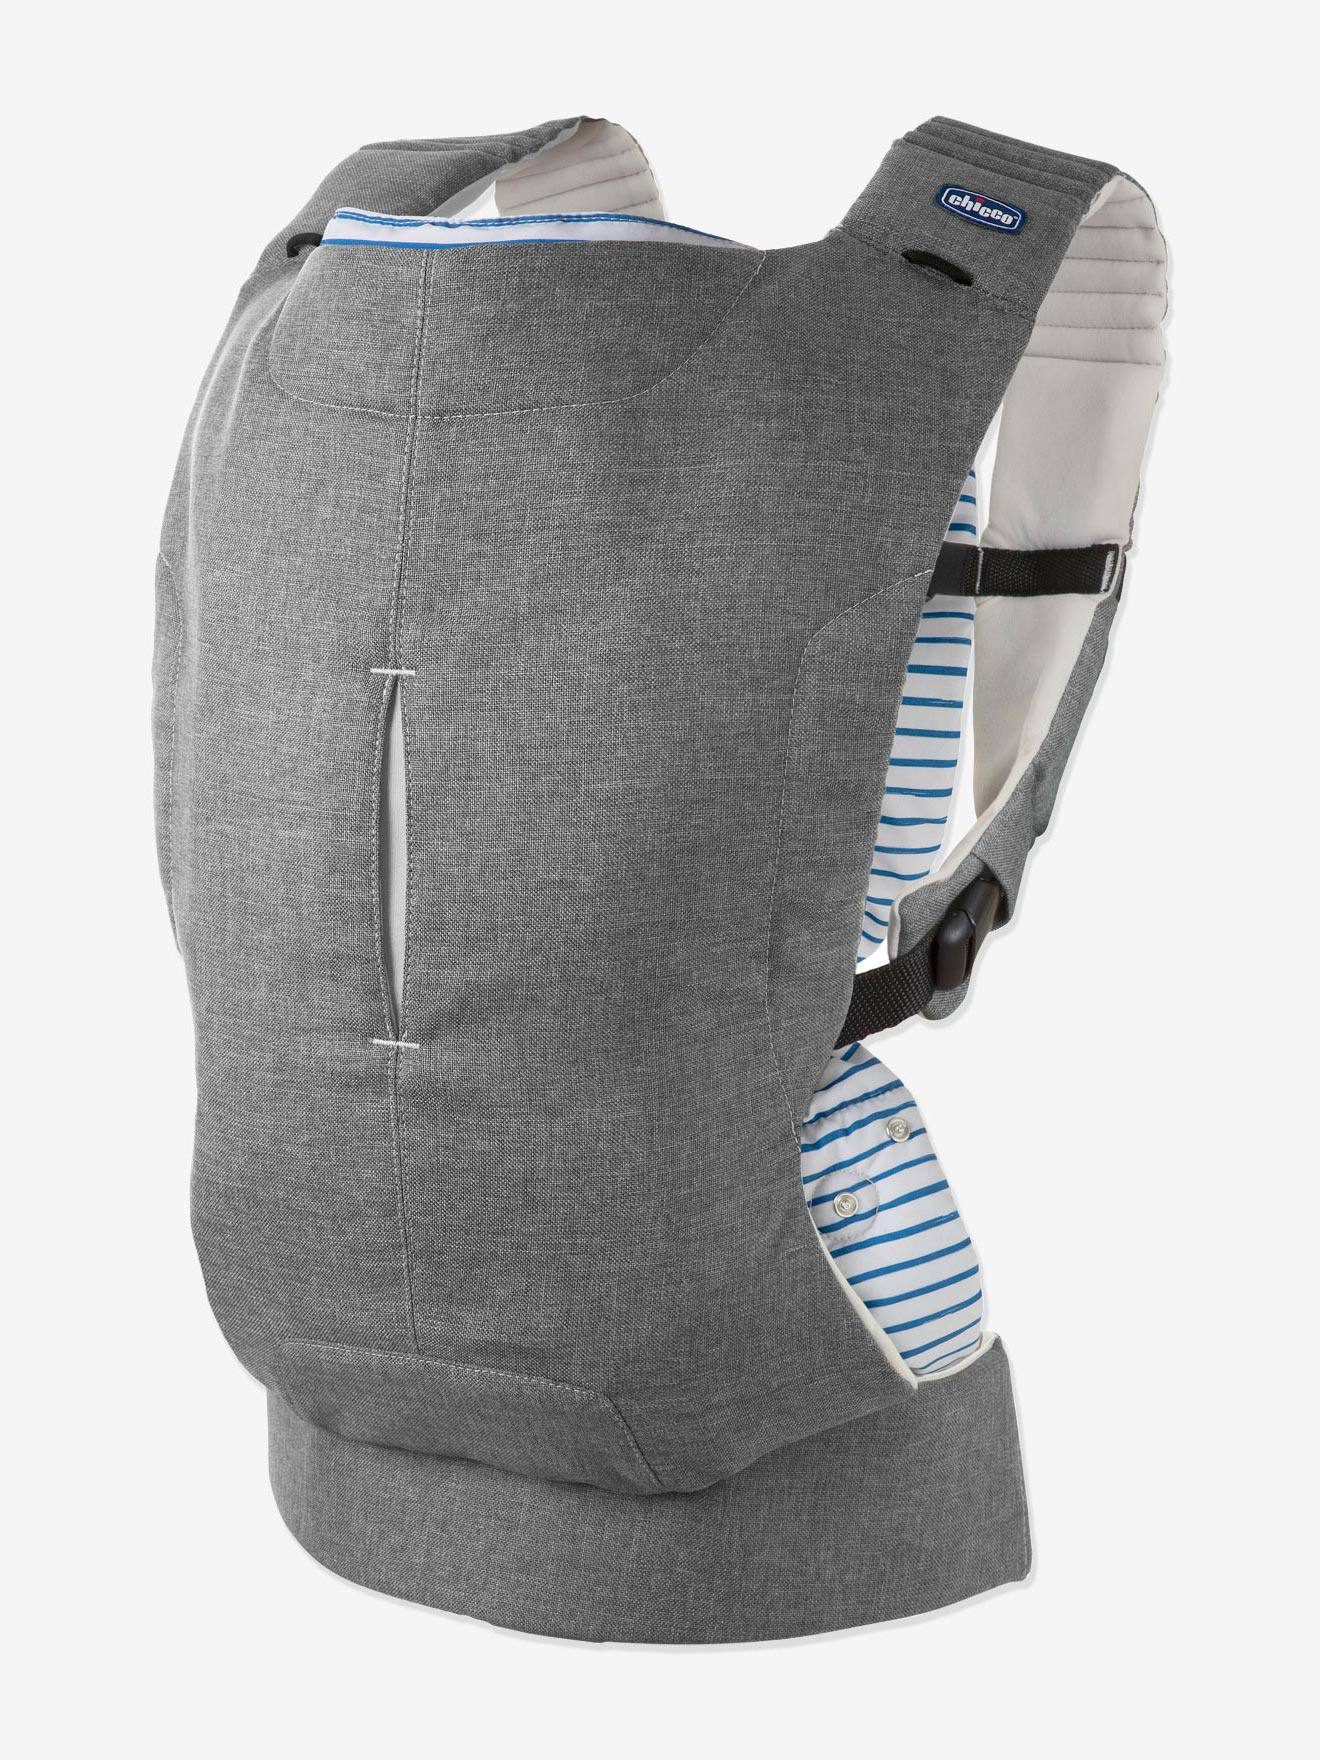 Baby Sling Carriers Carry Bags Vertbaudet